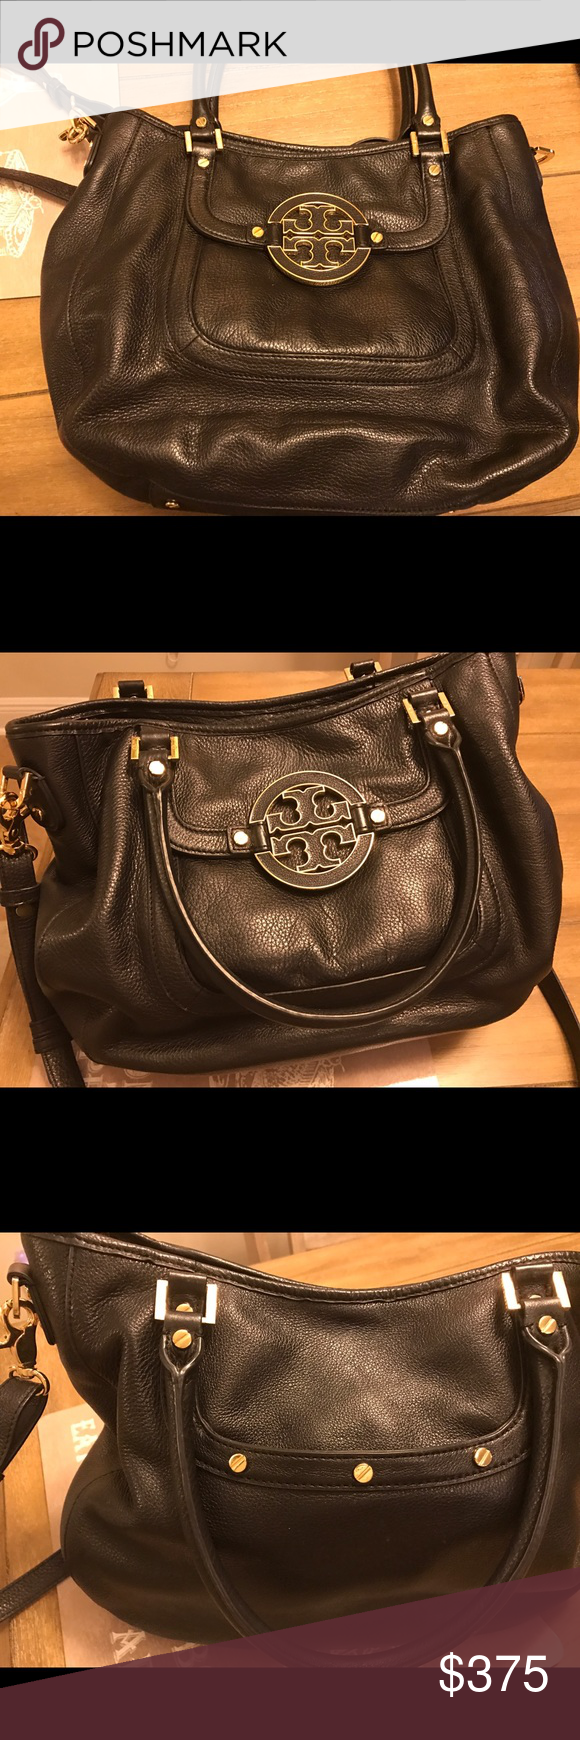 Tory Burch large Amanda Hobo bag Black leather with tan inside. Large Amanda Hobo bag. Great condition with now stains or scratches. Tory Burch Bags Hobos